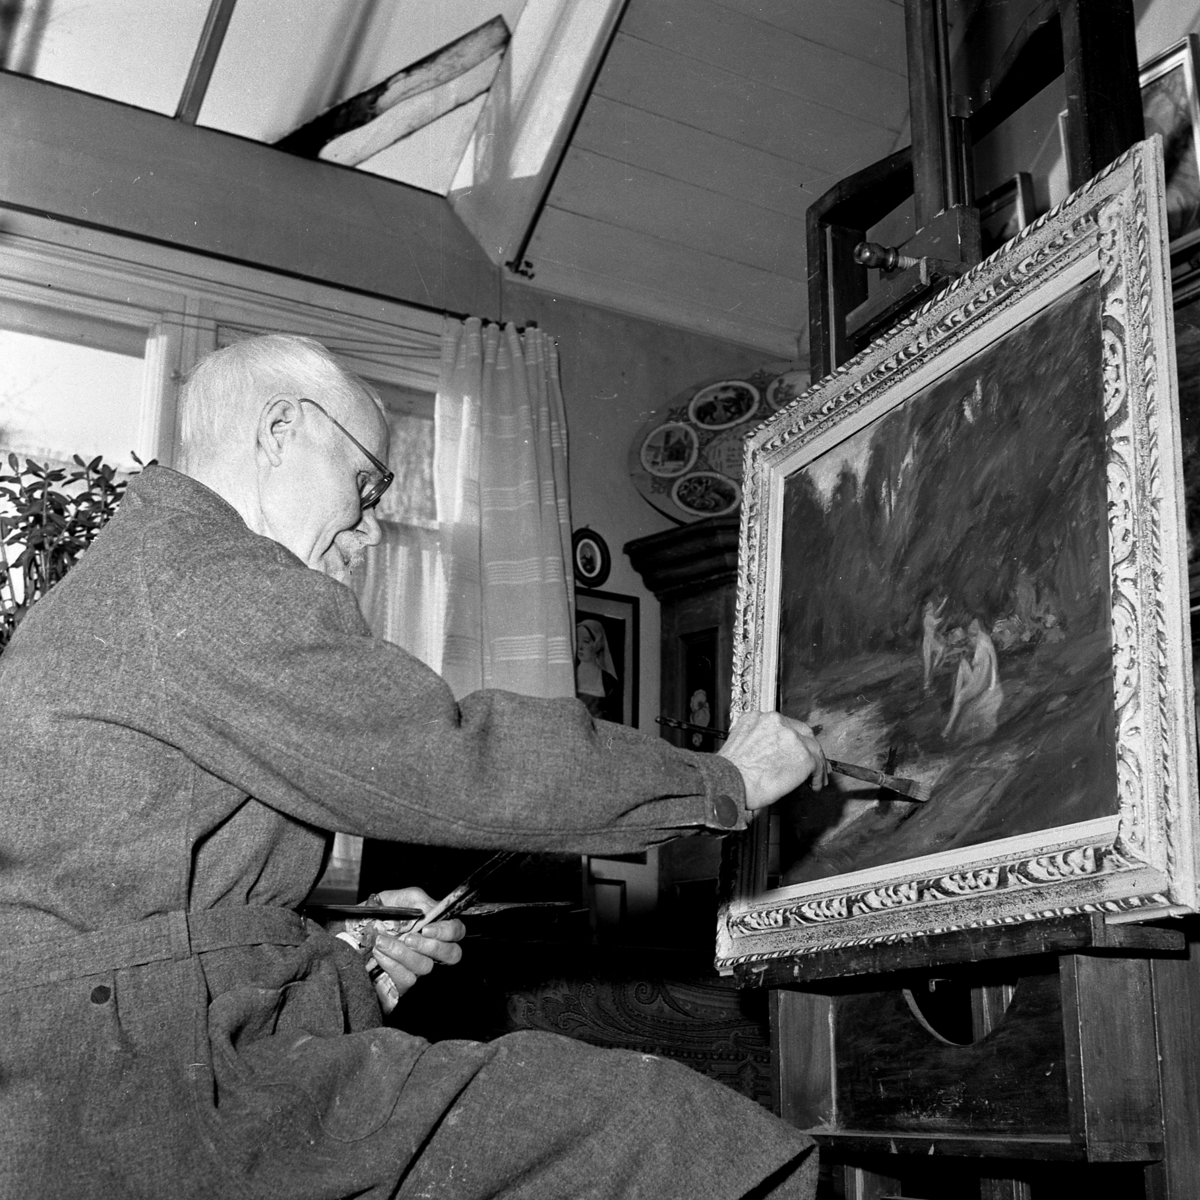 Lundeby, Alf (1870 - 1961)